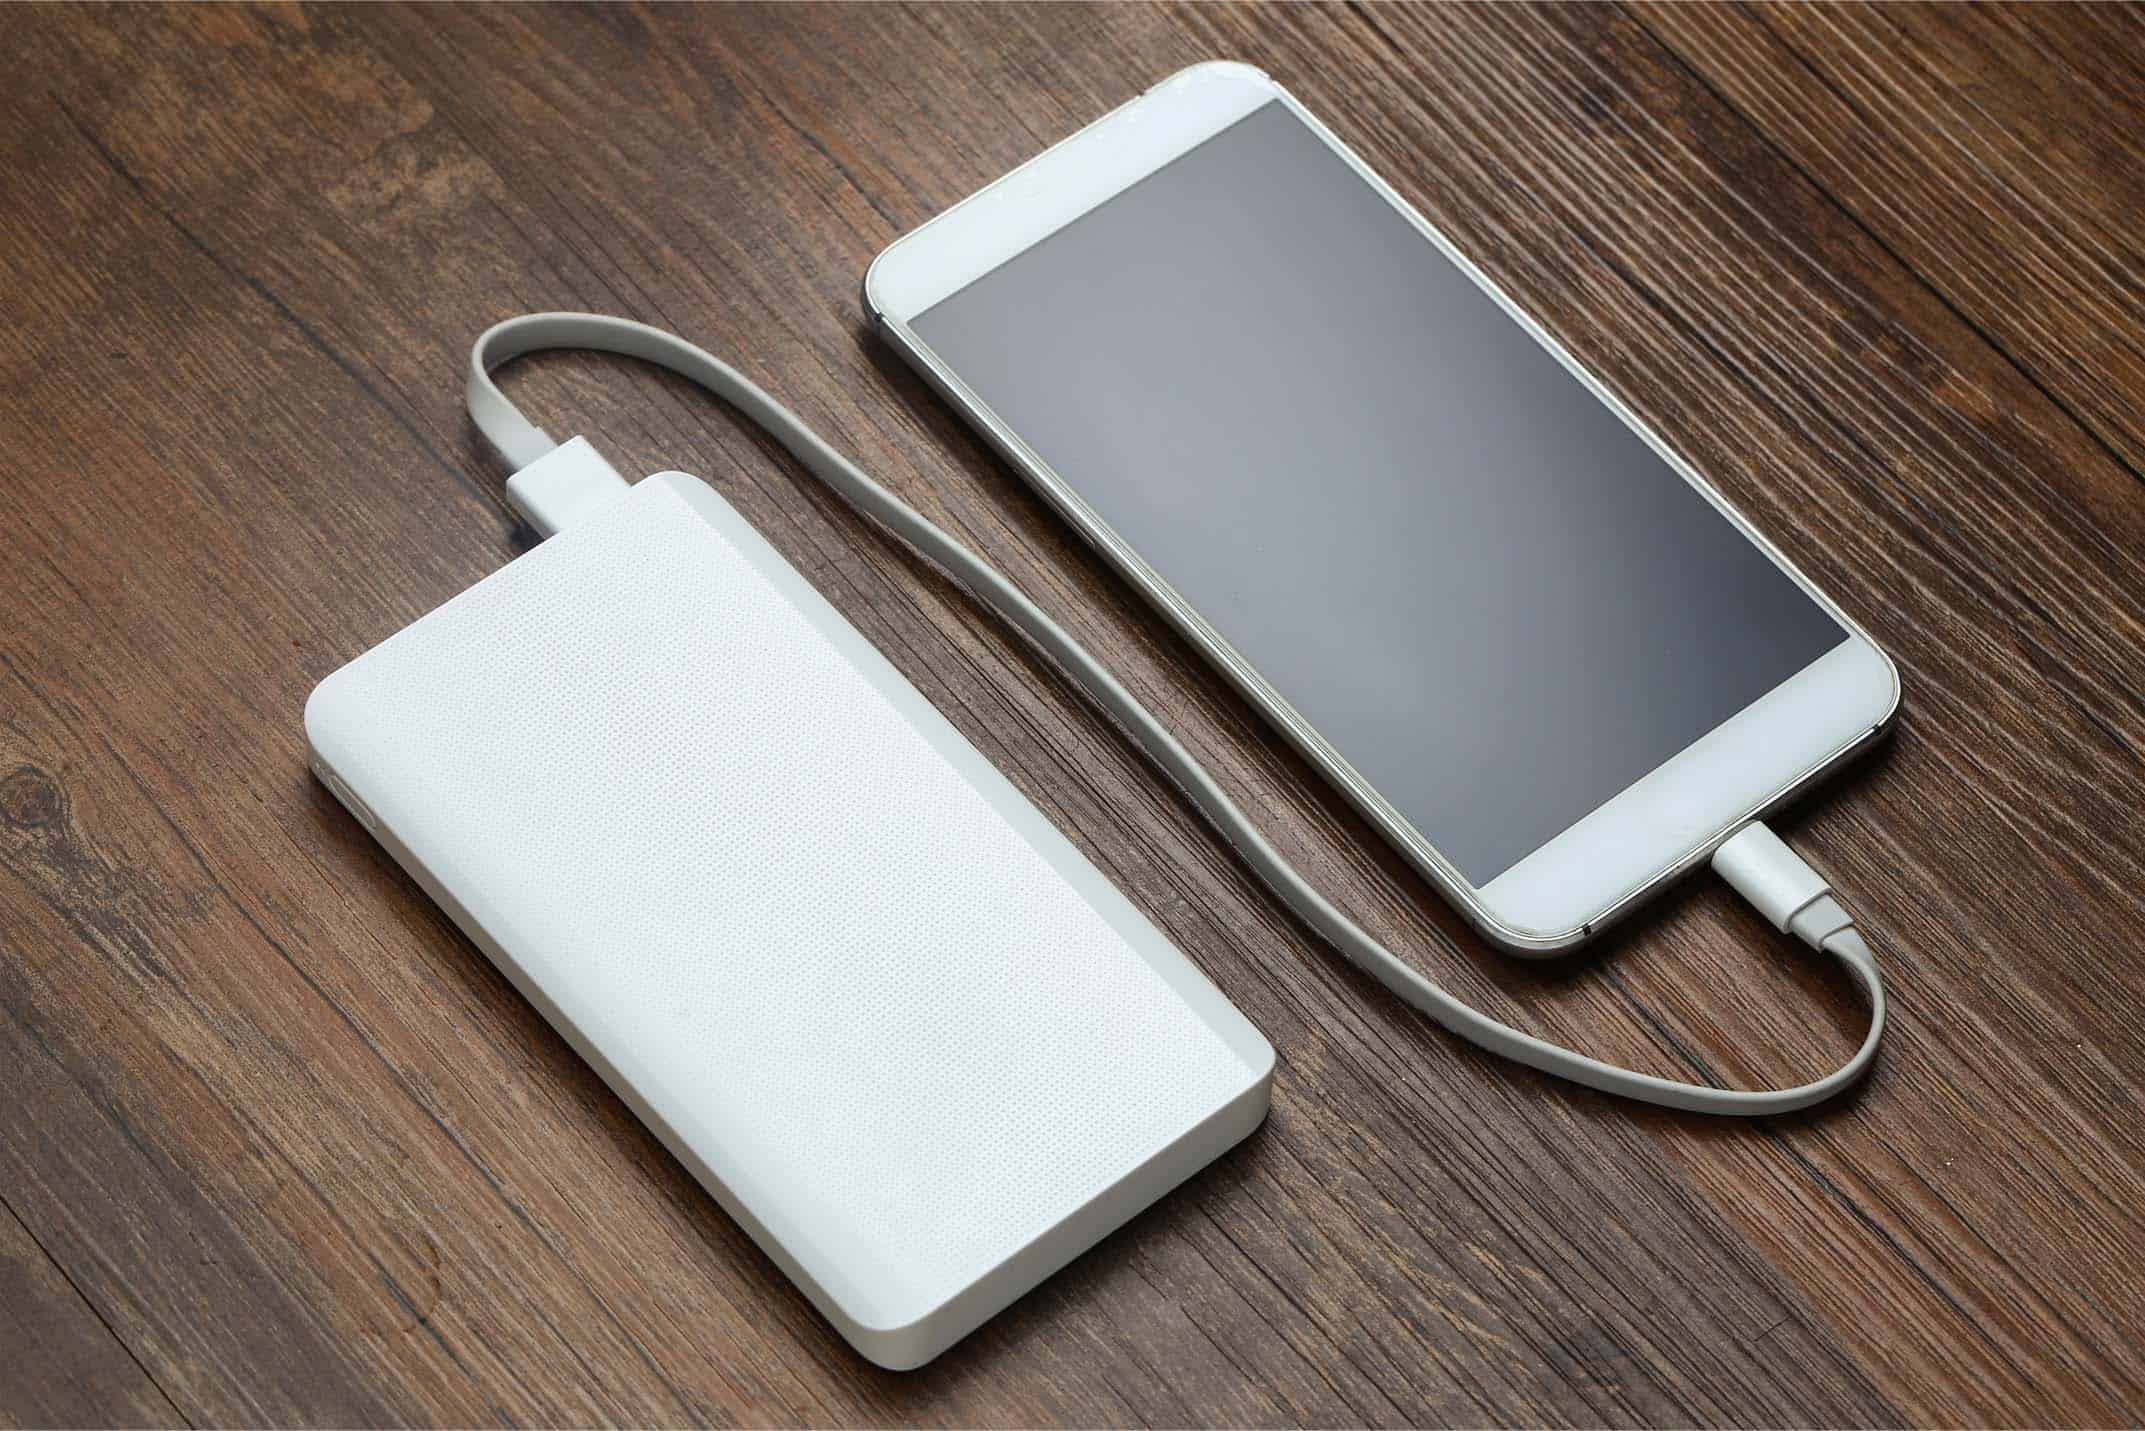 Why You Need a Power Bank